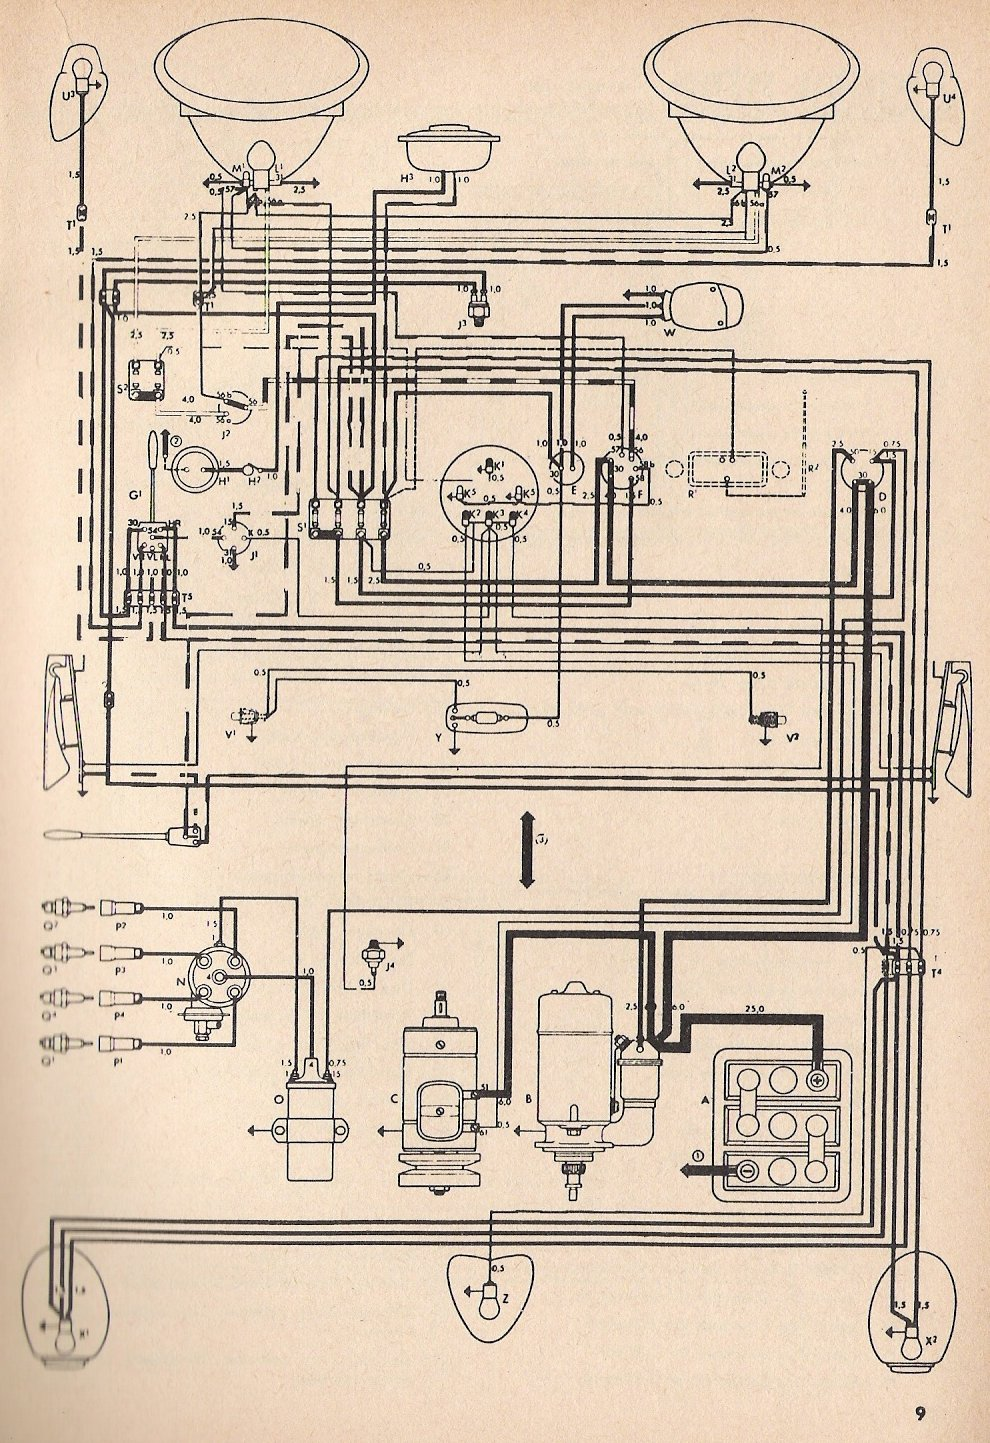 hight resolution of thesamba com type 1 wiring diagrams 63vw bug fuse diagram